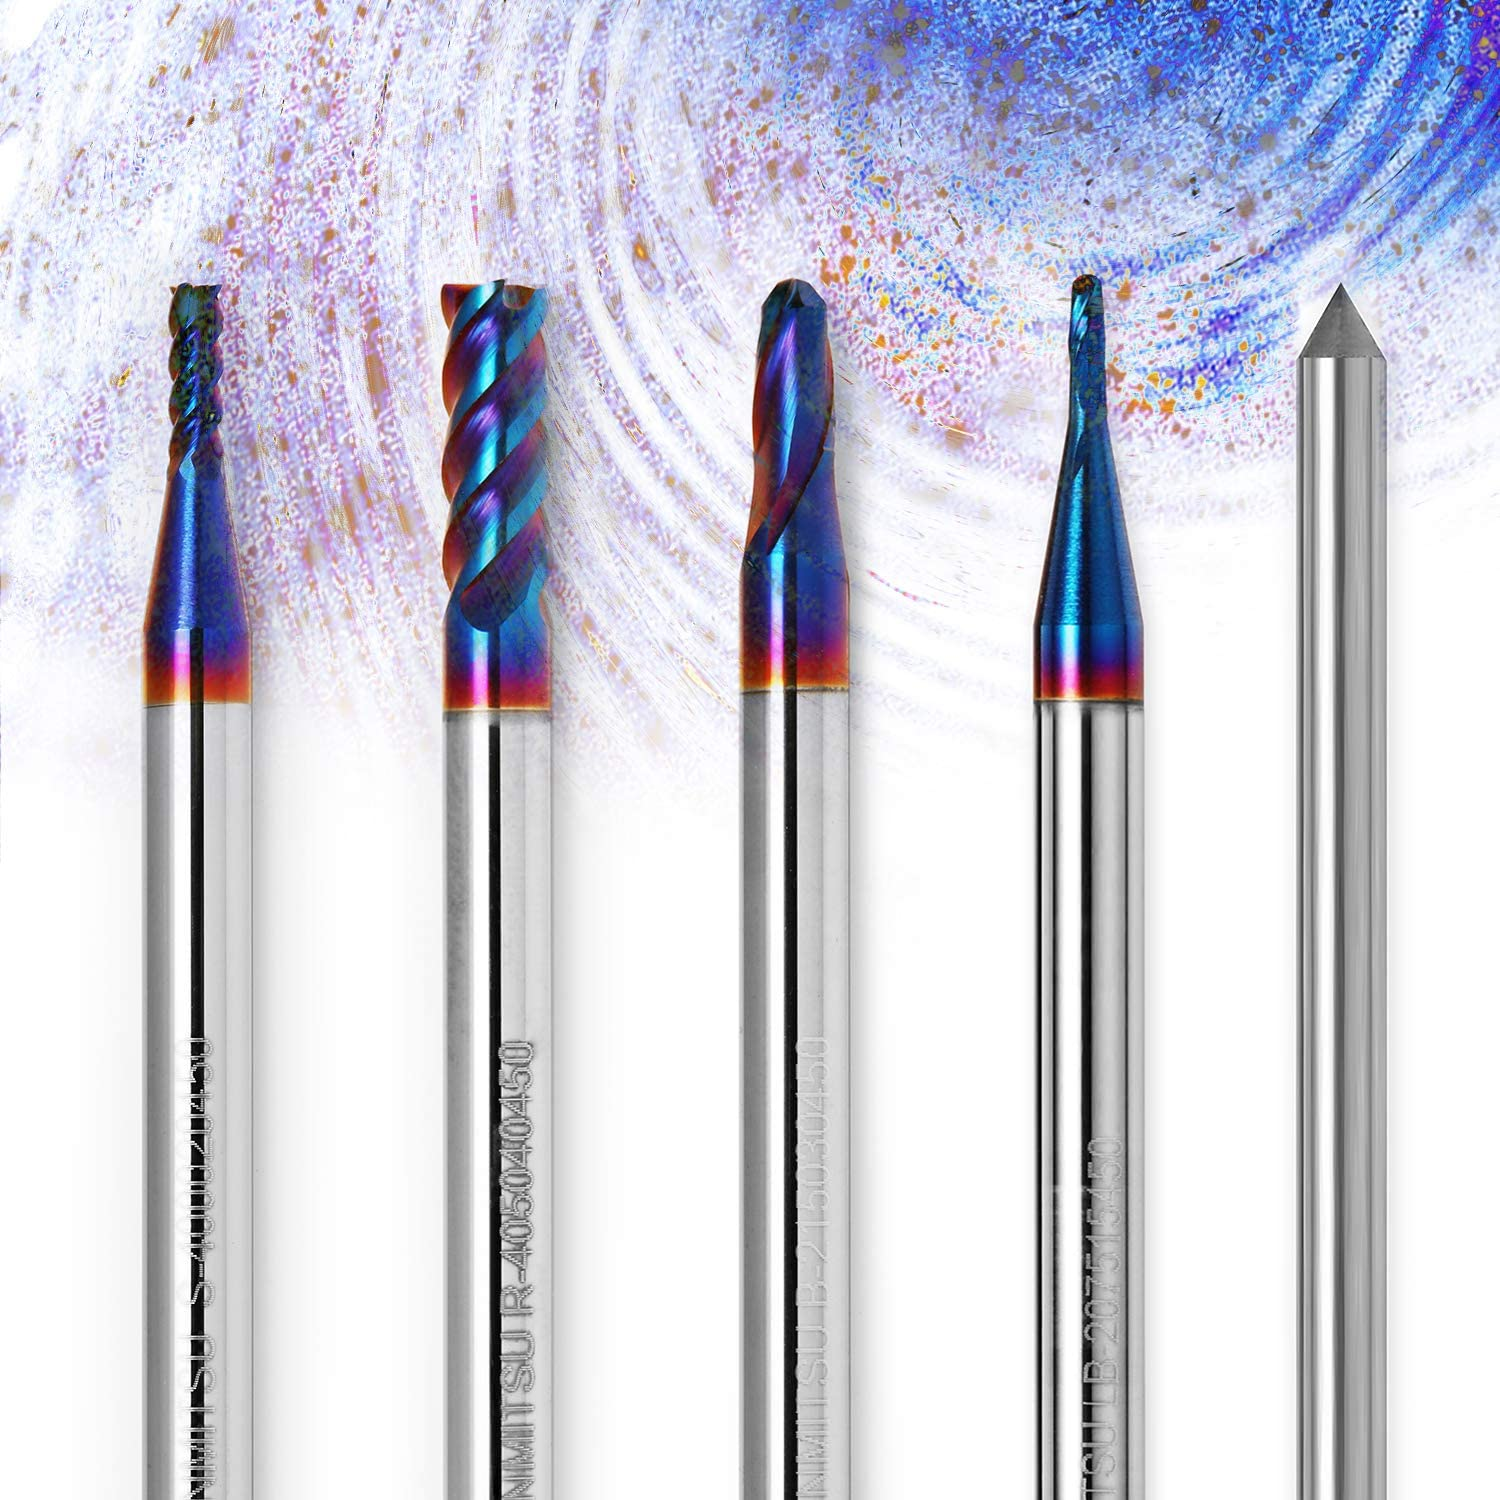 Copper Soft Metal ideal for Wood Aluminum Solid Carbide Nano Blue Coat Tungsten Steel Acrylic Plastic Genmitsu CNC Router Bits End Mill /& Diamond Dresser Set of 5 use for Contour Design